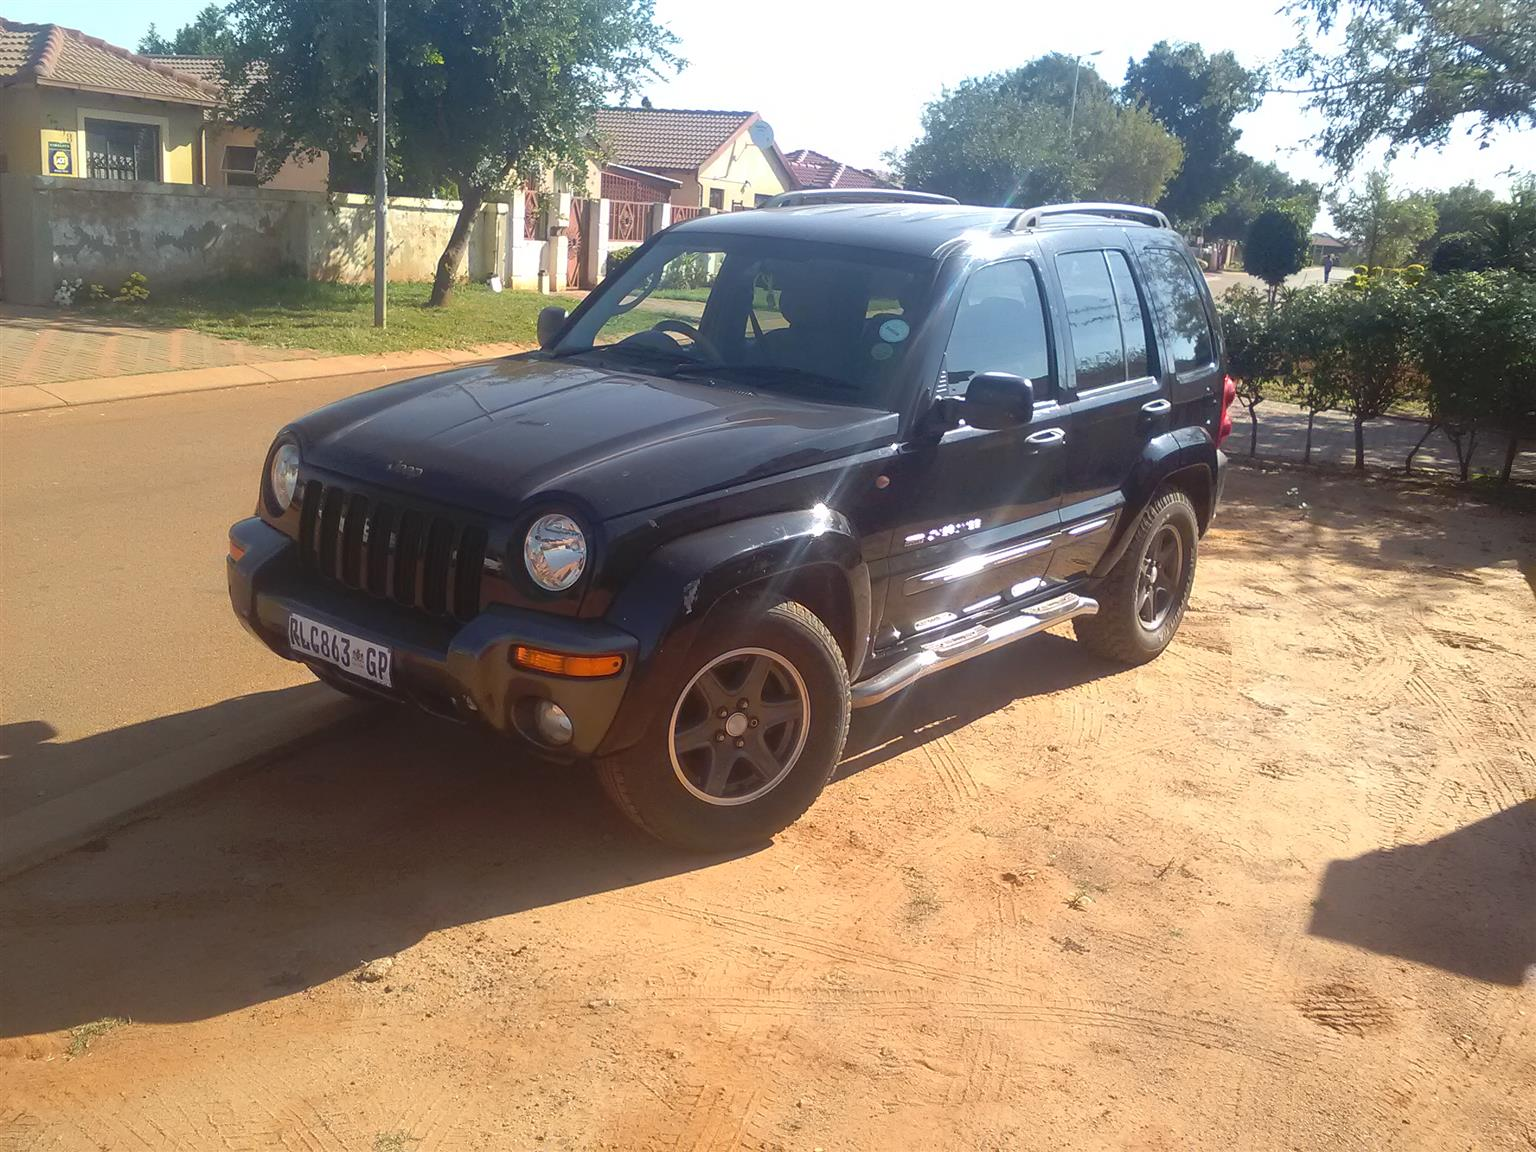 2003 Jeep Cherokee 3.7L Extreme Sport